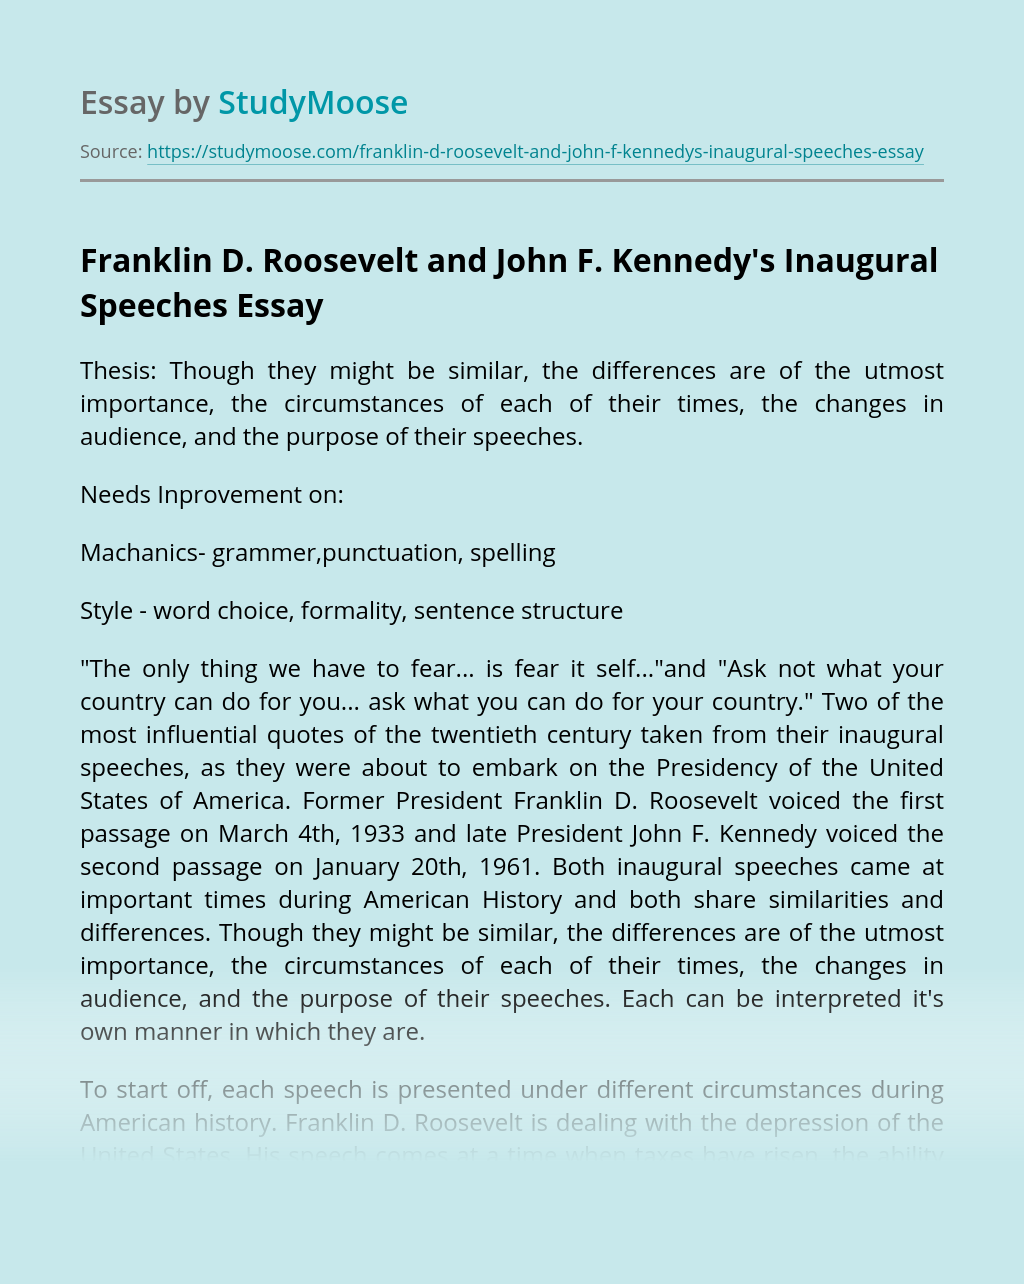 Franklin D. Roosevelt and John F. Kennedy's Inaugural Speeches